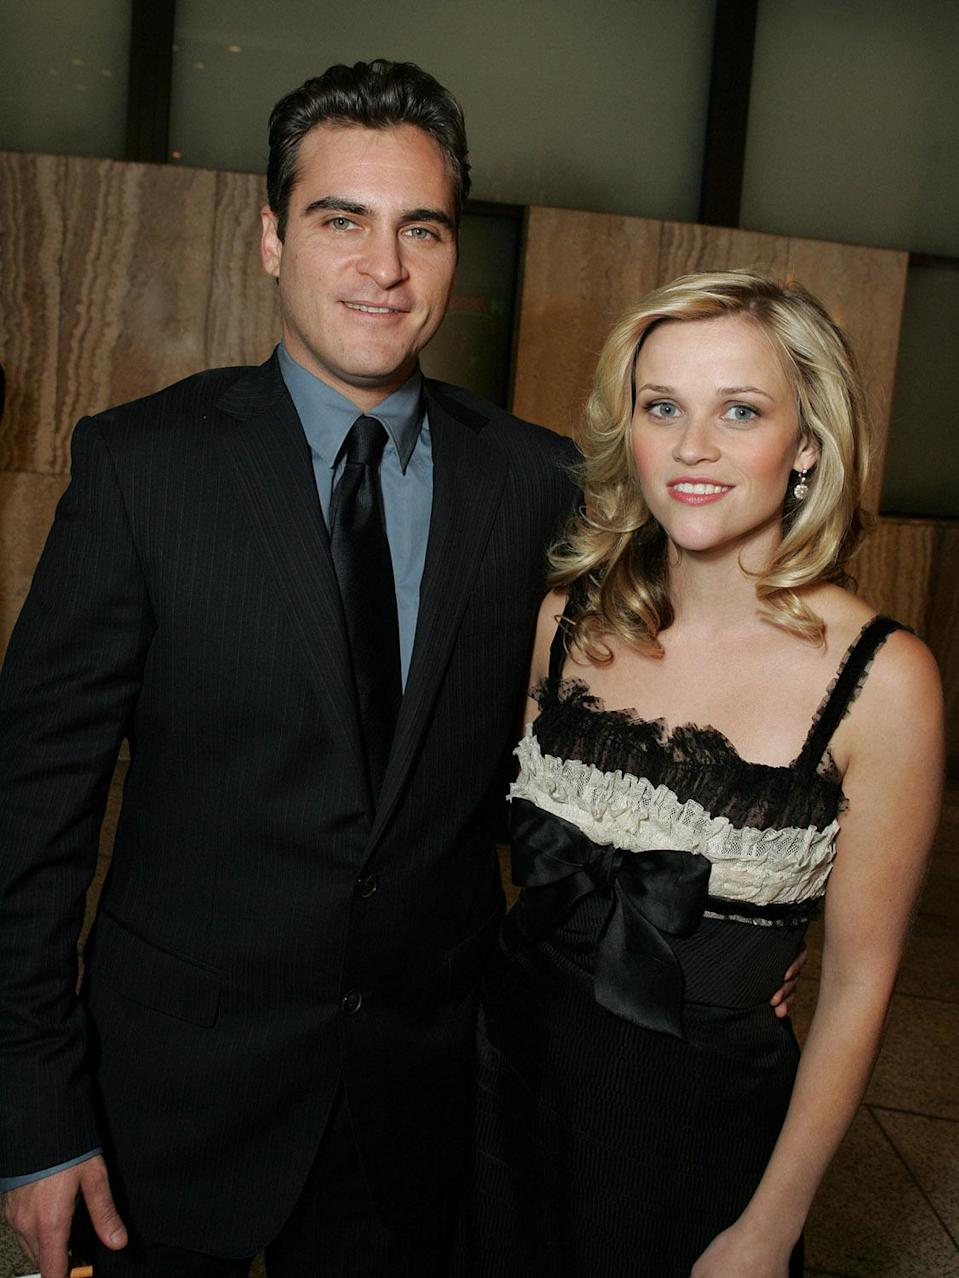 "<p>Seen here with co-star Joaquin Phoenix at the Los Angeles premiere, Reese would go on to win the Best Actress Oscar for her portrayal of June Carter Cash. In her <a href=""http://news.bbc.co.uk/2/hi/entertainment/4777596.stm"" rel=""nofollow noopener"" target=""_blank"" data-ylk=""slk:acceptance speech"" class=""link rapid-noclick-resp"">acceptance speech</a>, Reese thanked the real Carter Cash, saying, ""People used to ask June how she was doing, and she used to say <span>—</span> 'I'm just trying to matter'. And I know what she means. You know, I'm just trying to matter, and live a good life and make work that means something to somebody.""<br>(Photo: Getty Images) </p>"